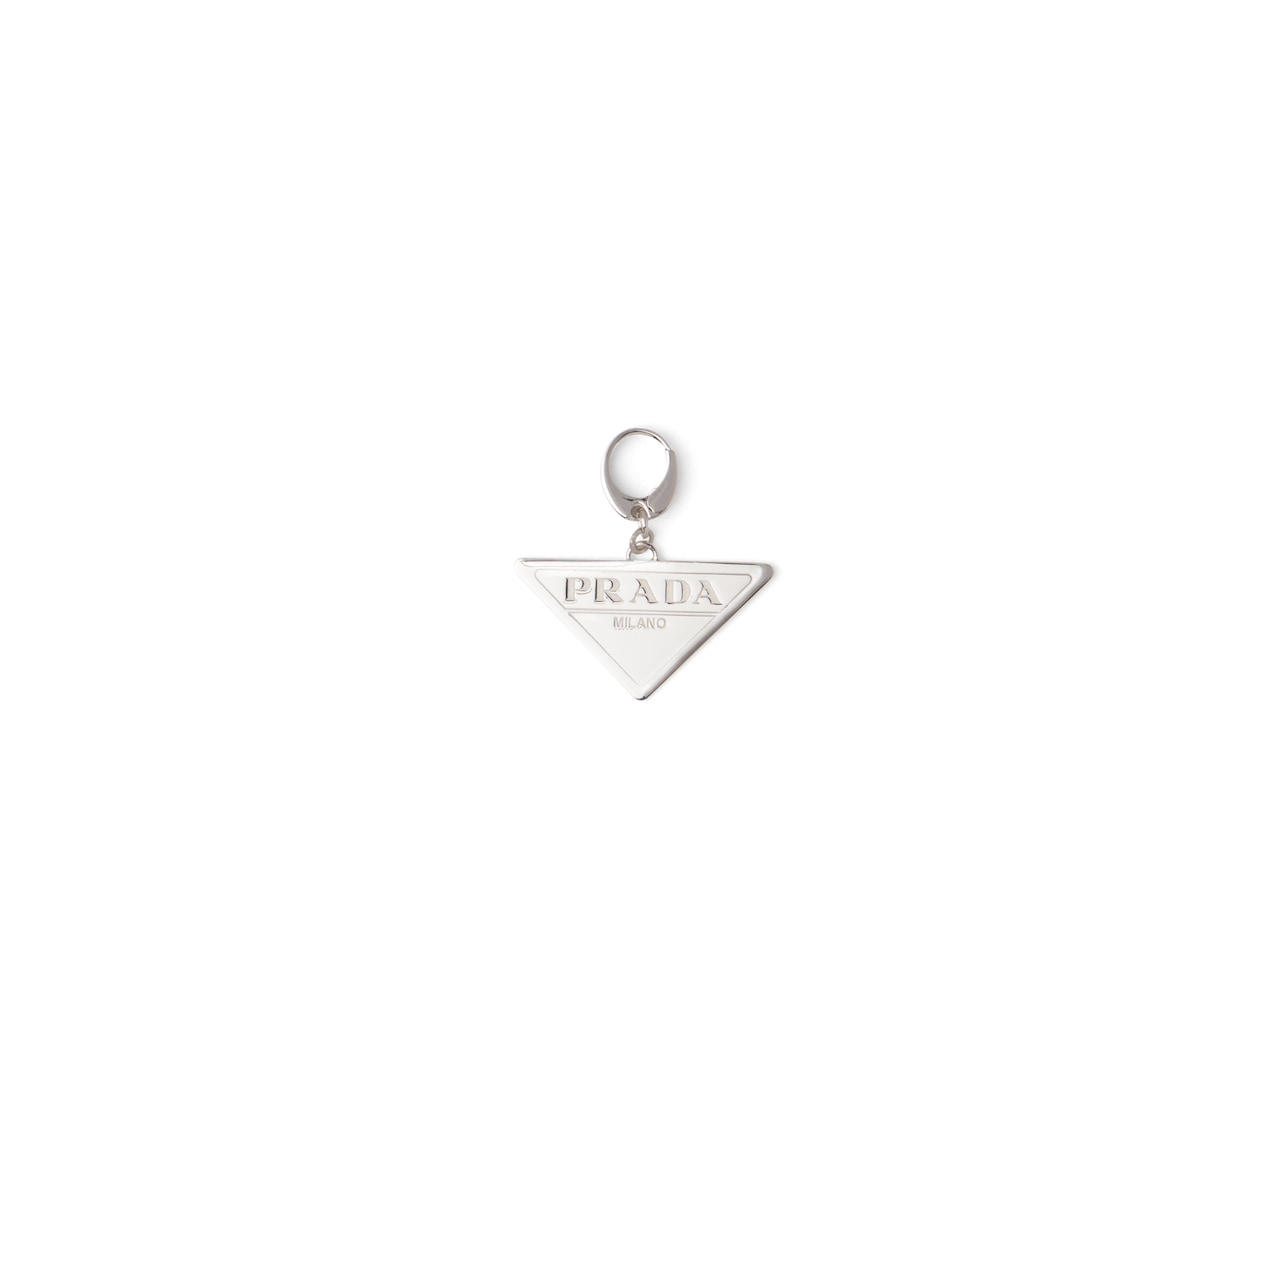 Prada Prada Fine Jewellery Charm with triangle logo 1